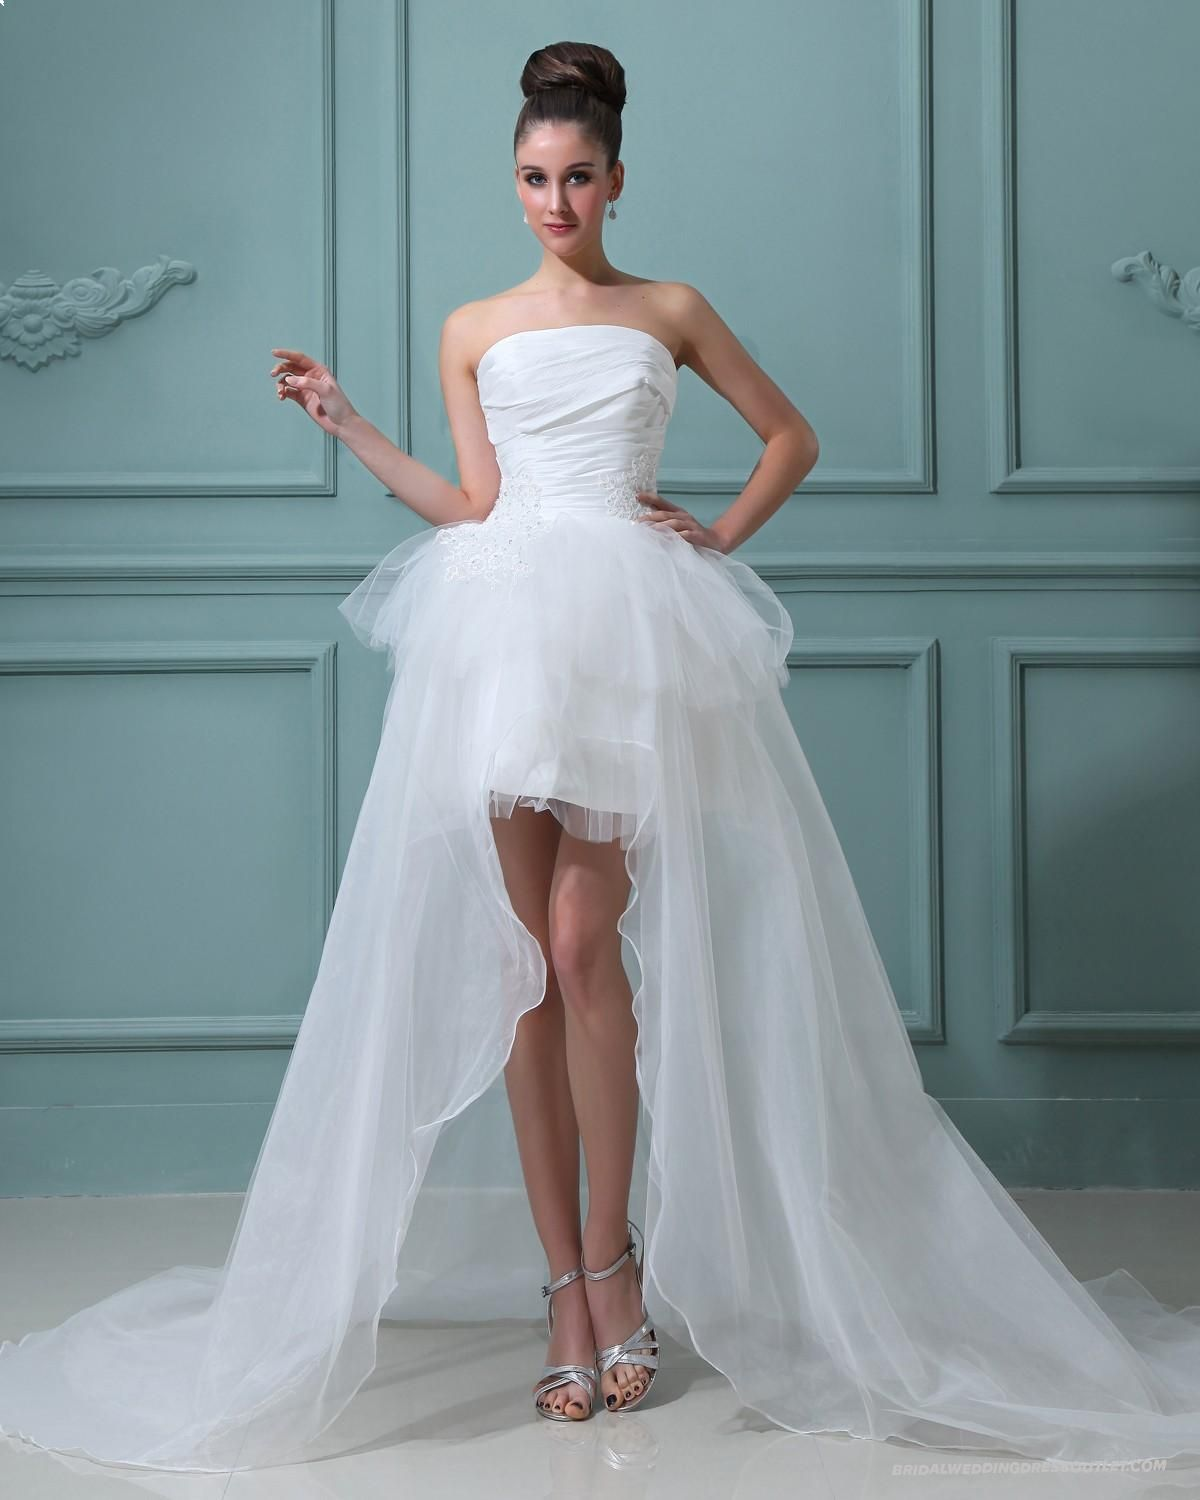 Stylish Strapless Taffeta Sash Short Bridal Gown Wedding Dress Of ...